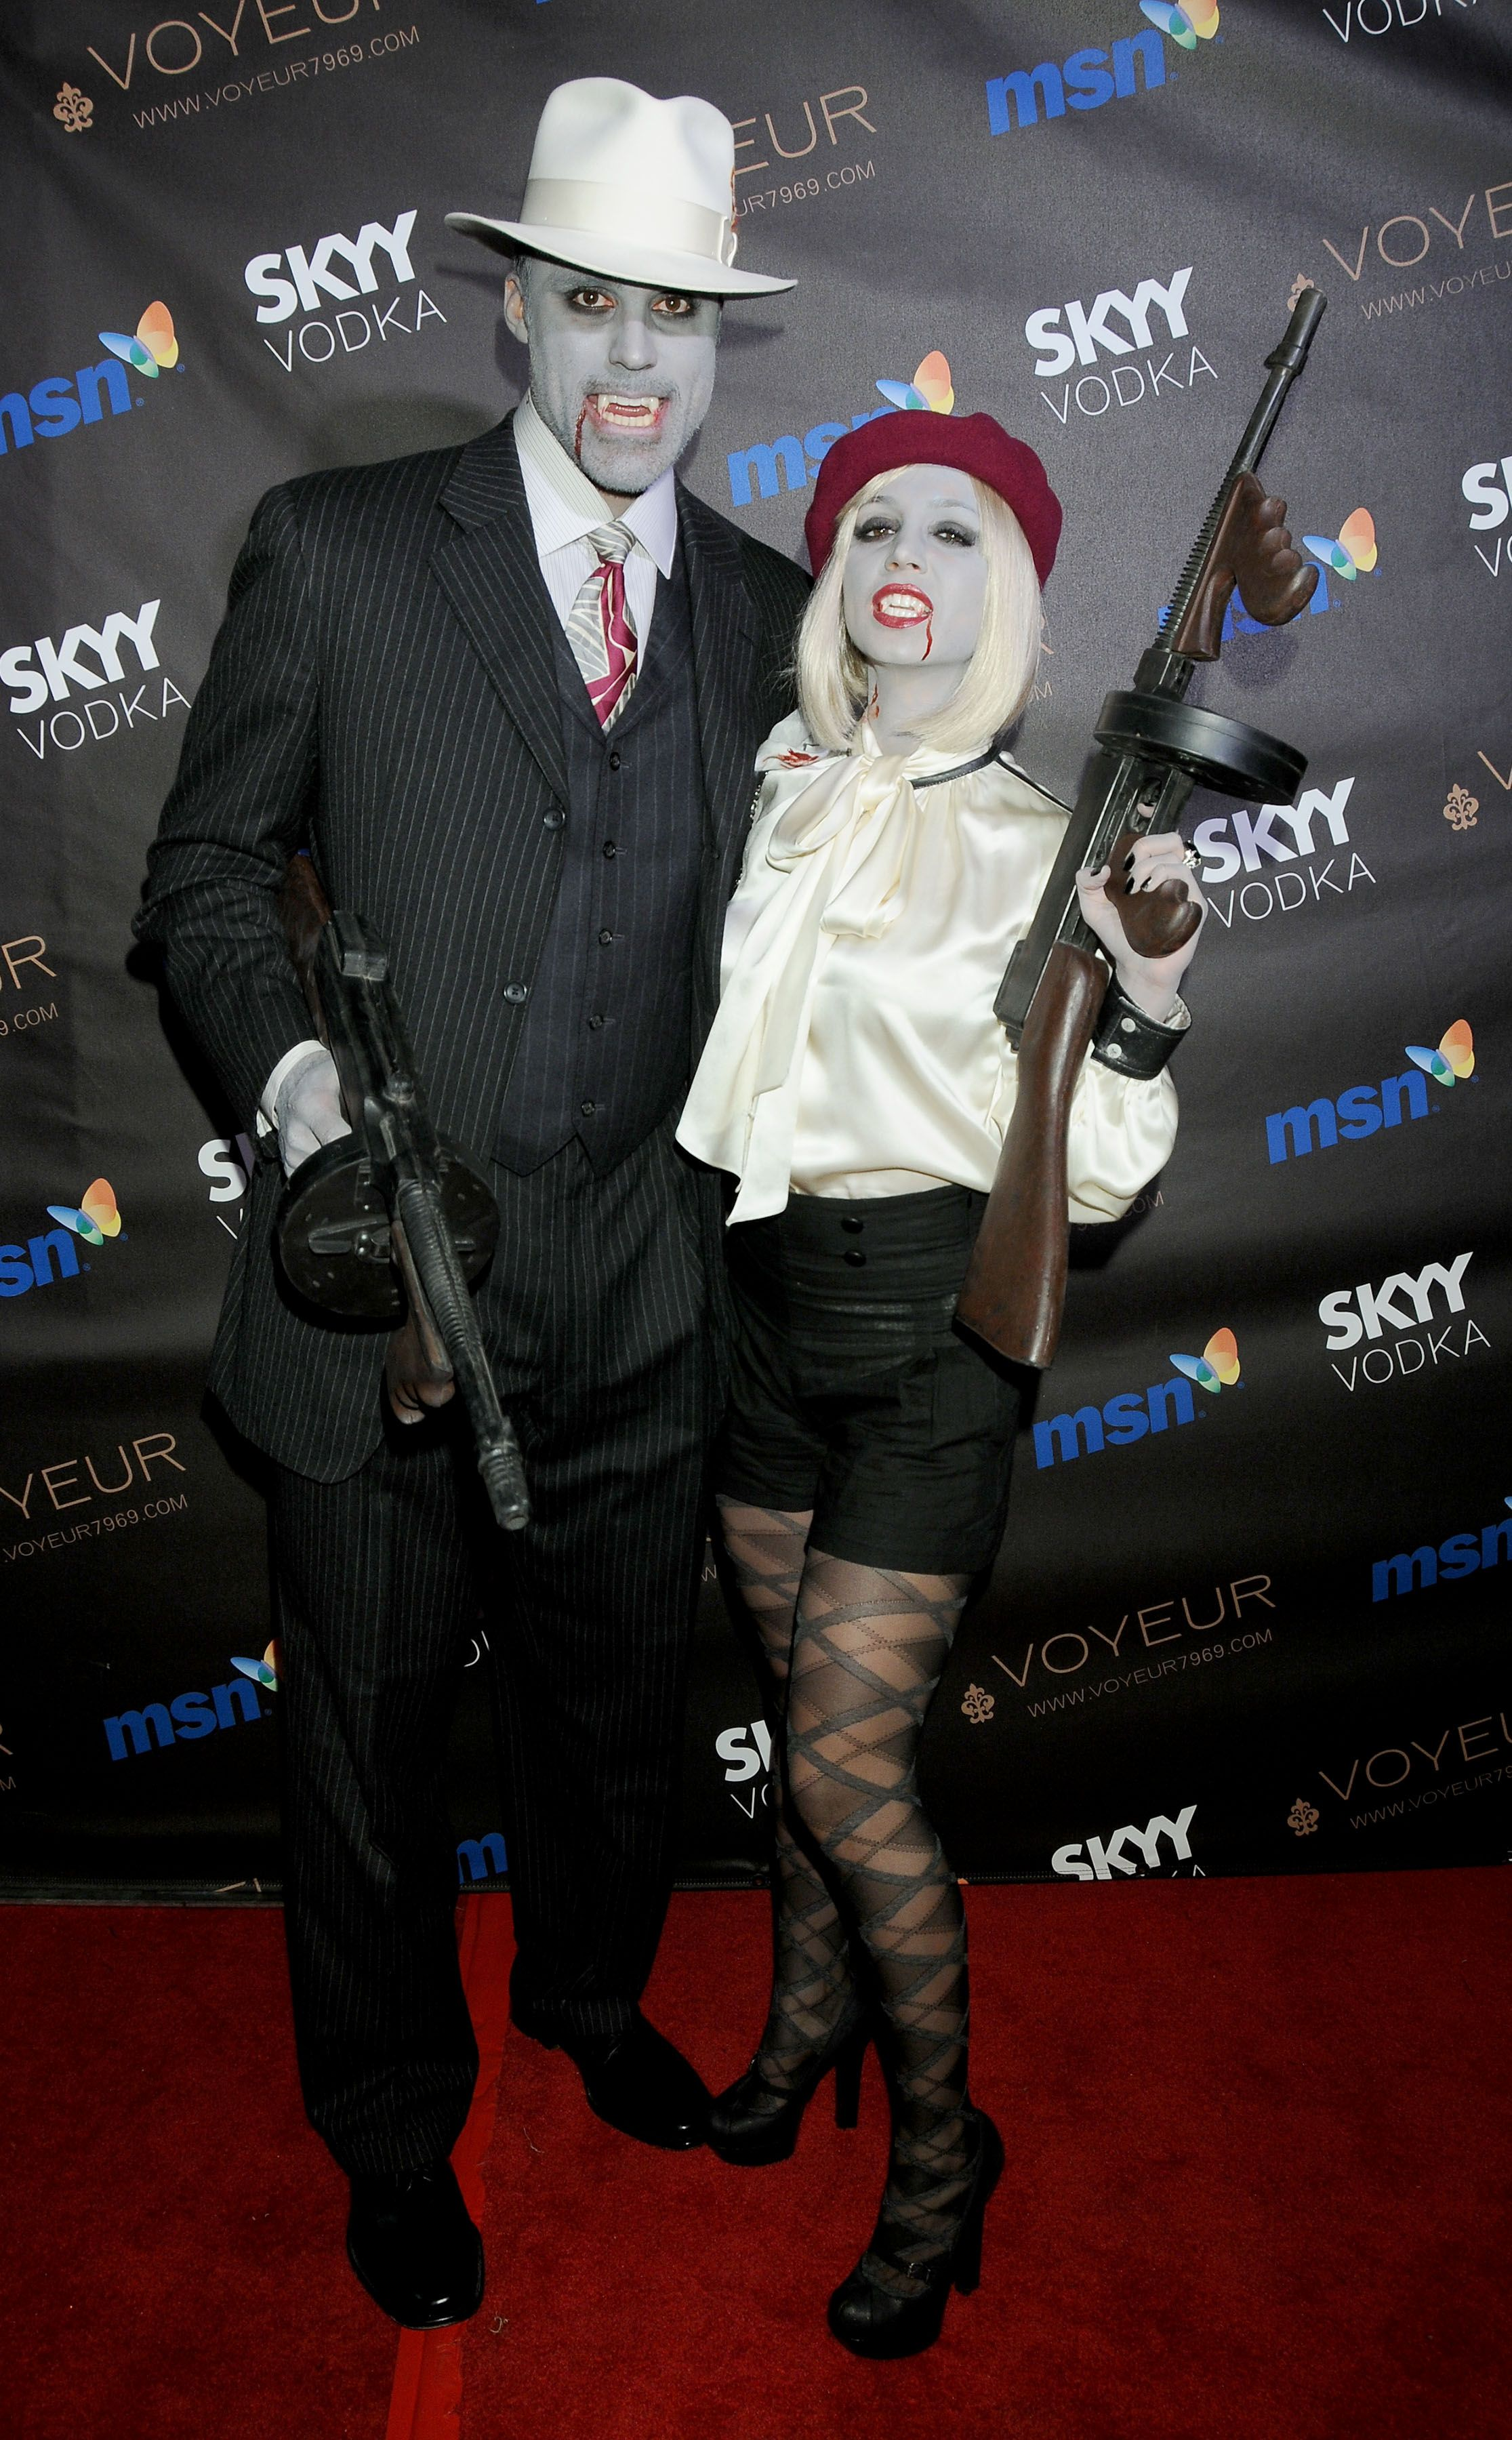 sc 1 st  Cosmopolitan & 53 Cute Celebrity Couples Halloween Costumes - Celeb Couples in Costume